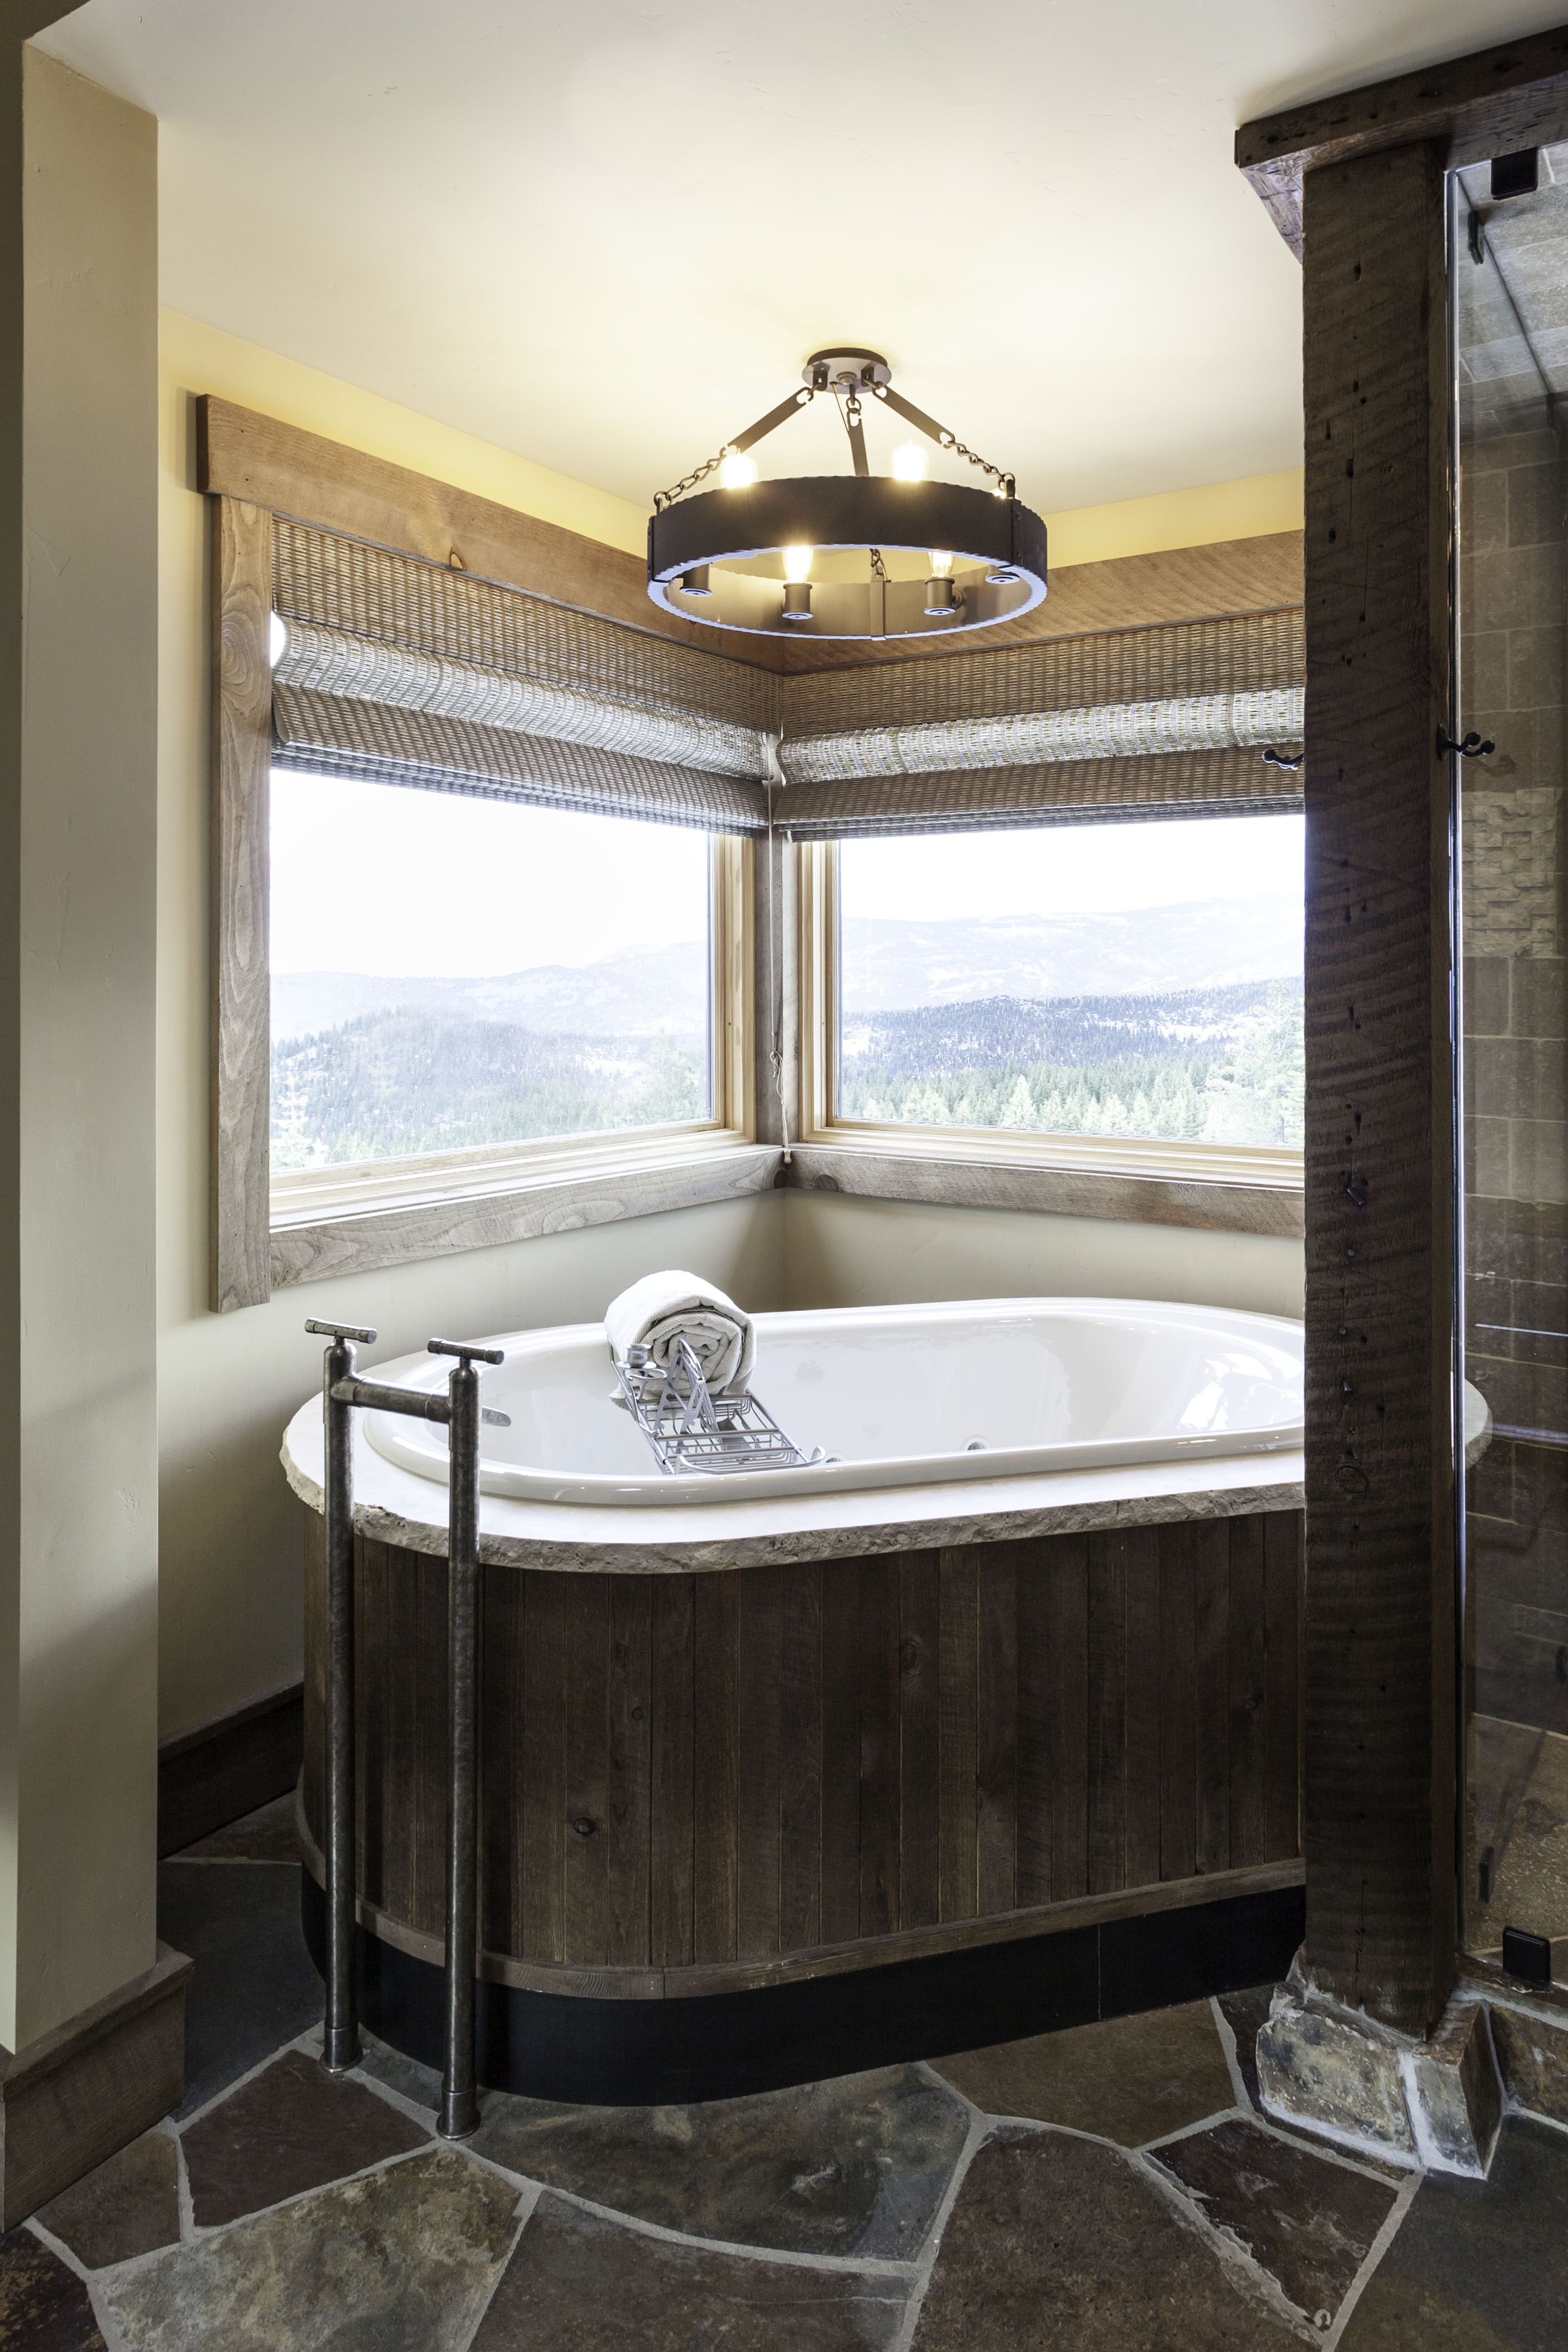 Baring It All With #Industrialstyle Takes Courage Here At #Sonomaforge,